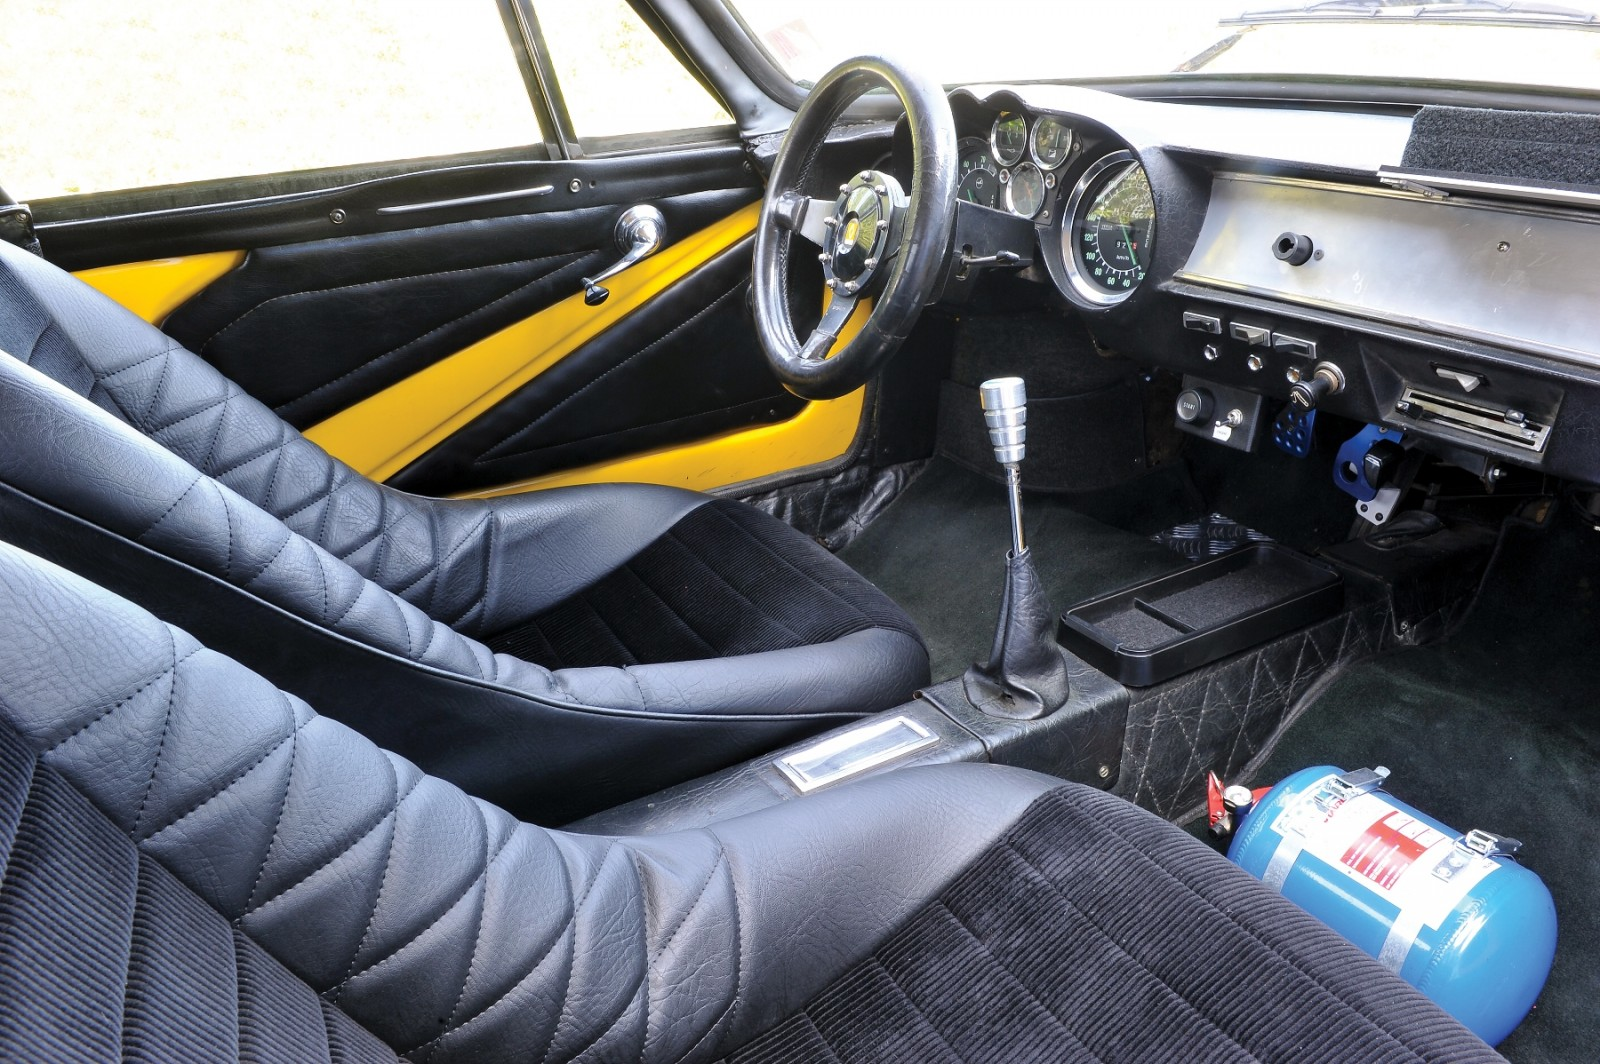 Rm London Highlights Gallery - 1973 Alpine A110 Berlinette 11